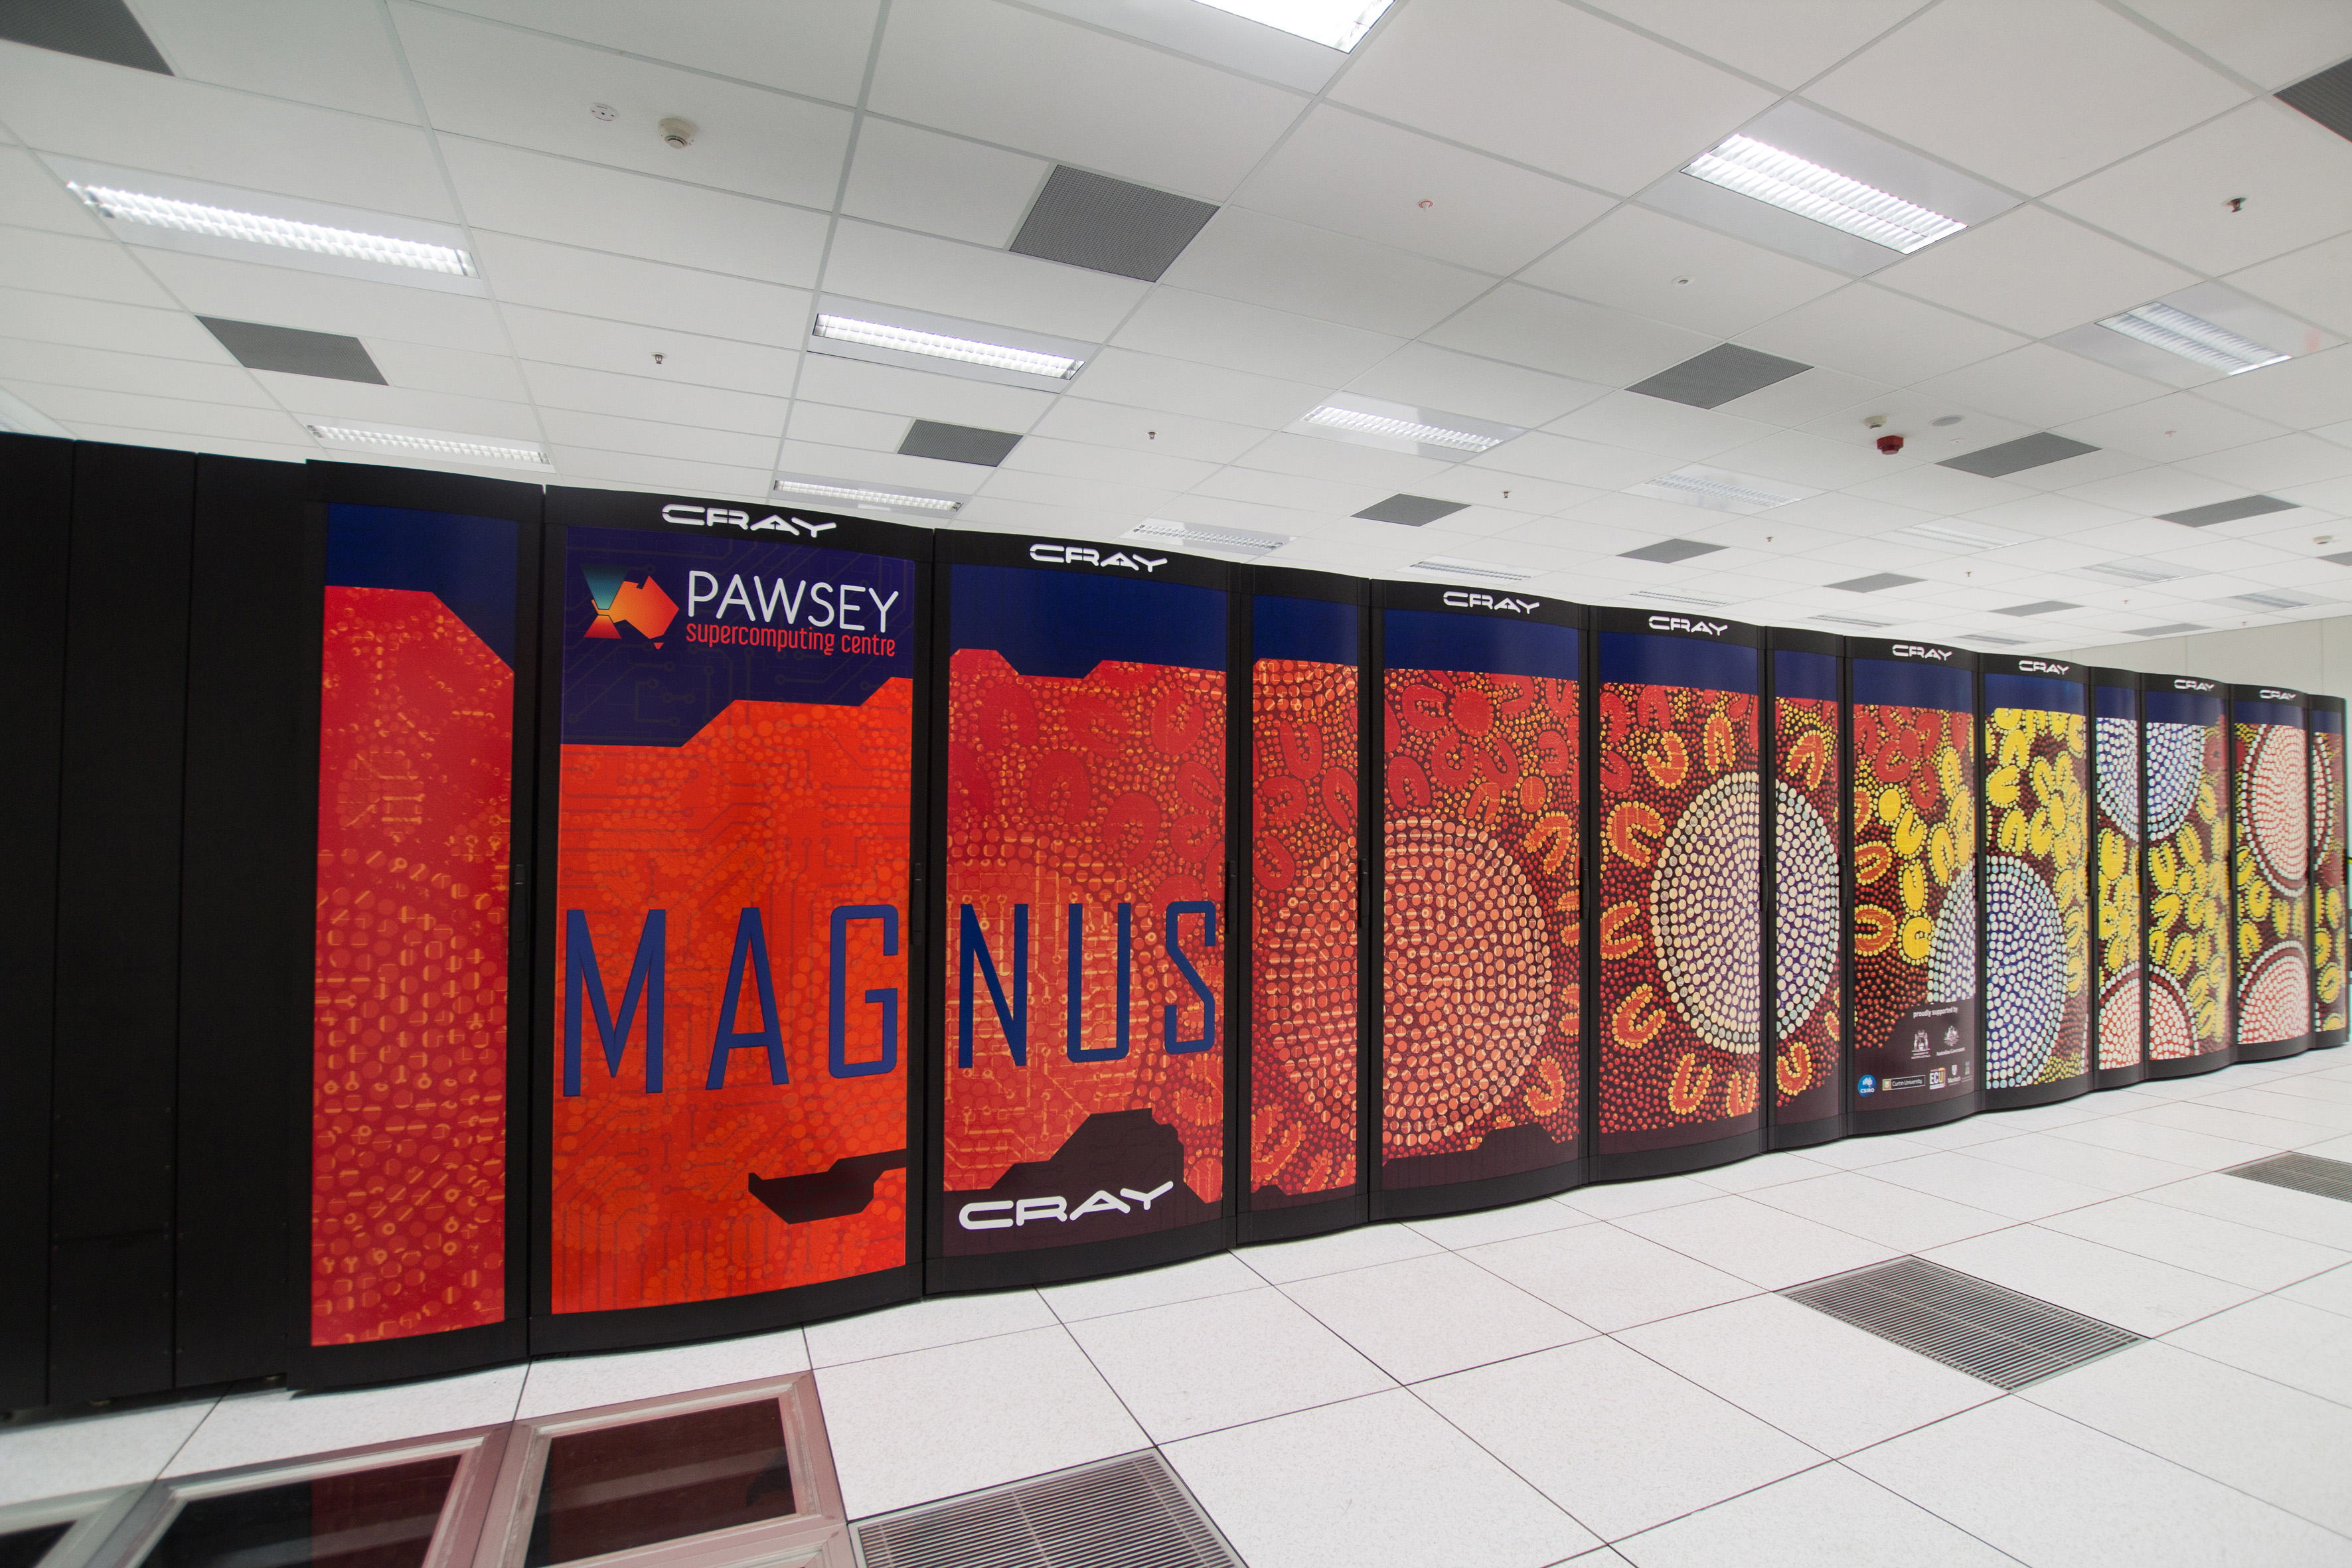 Inside view of part of the Pawsey Supercomputing Centre.